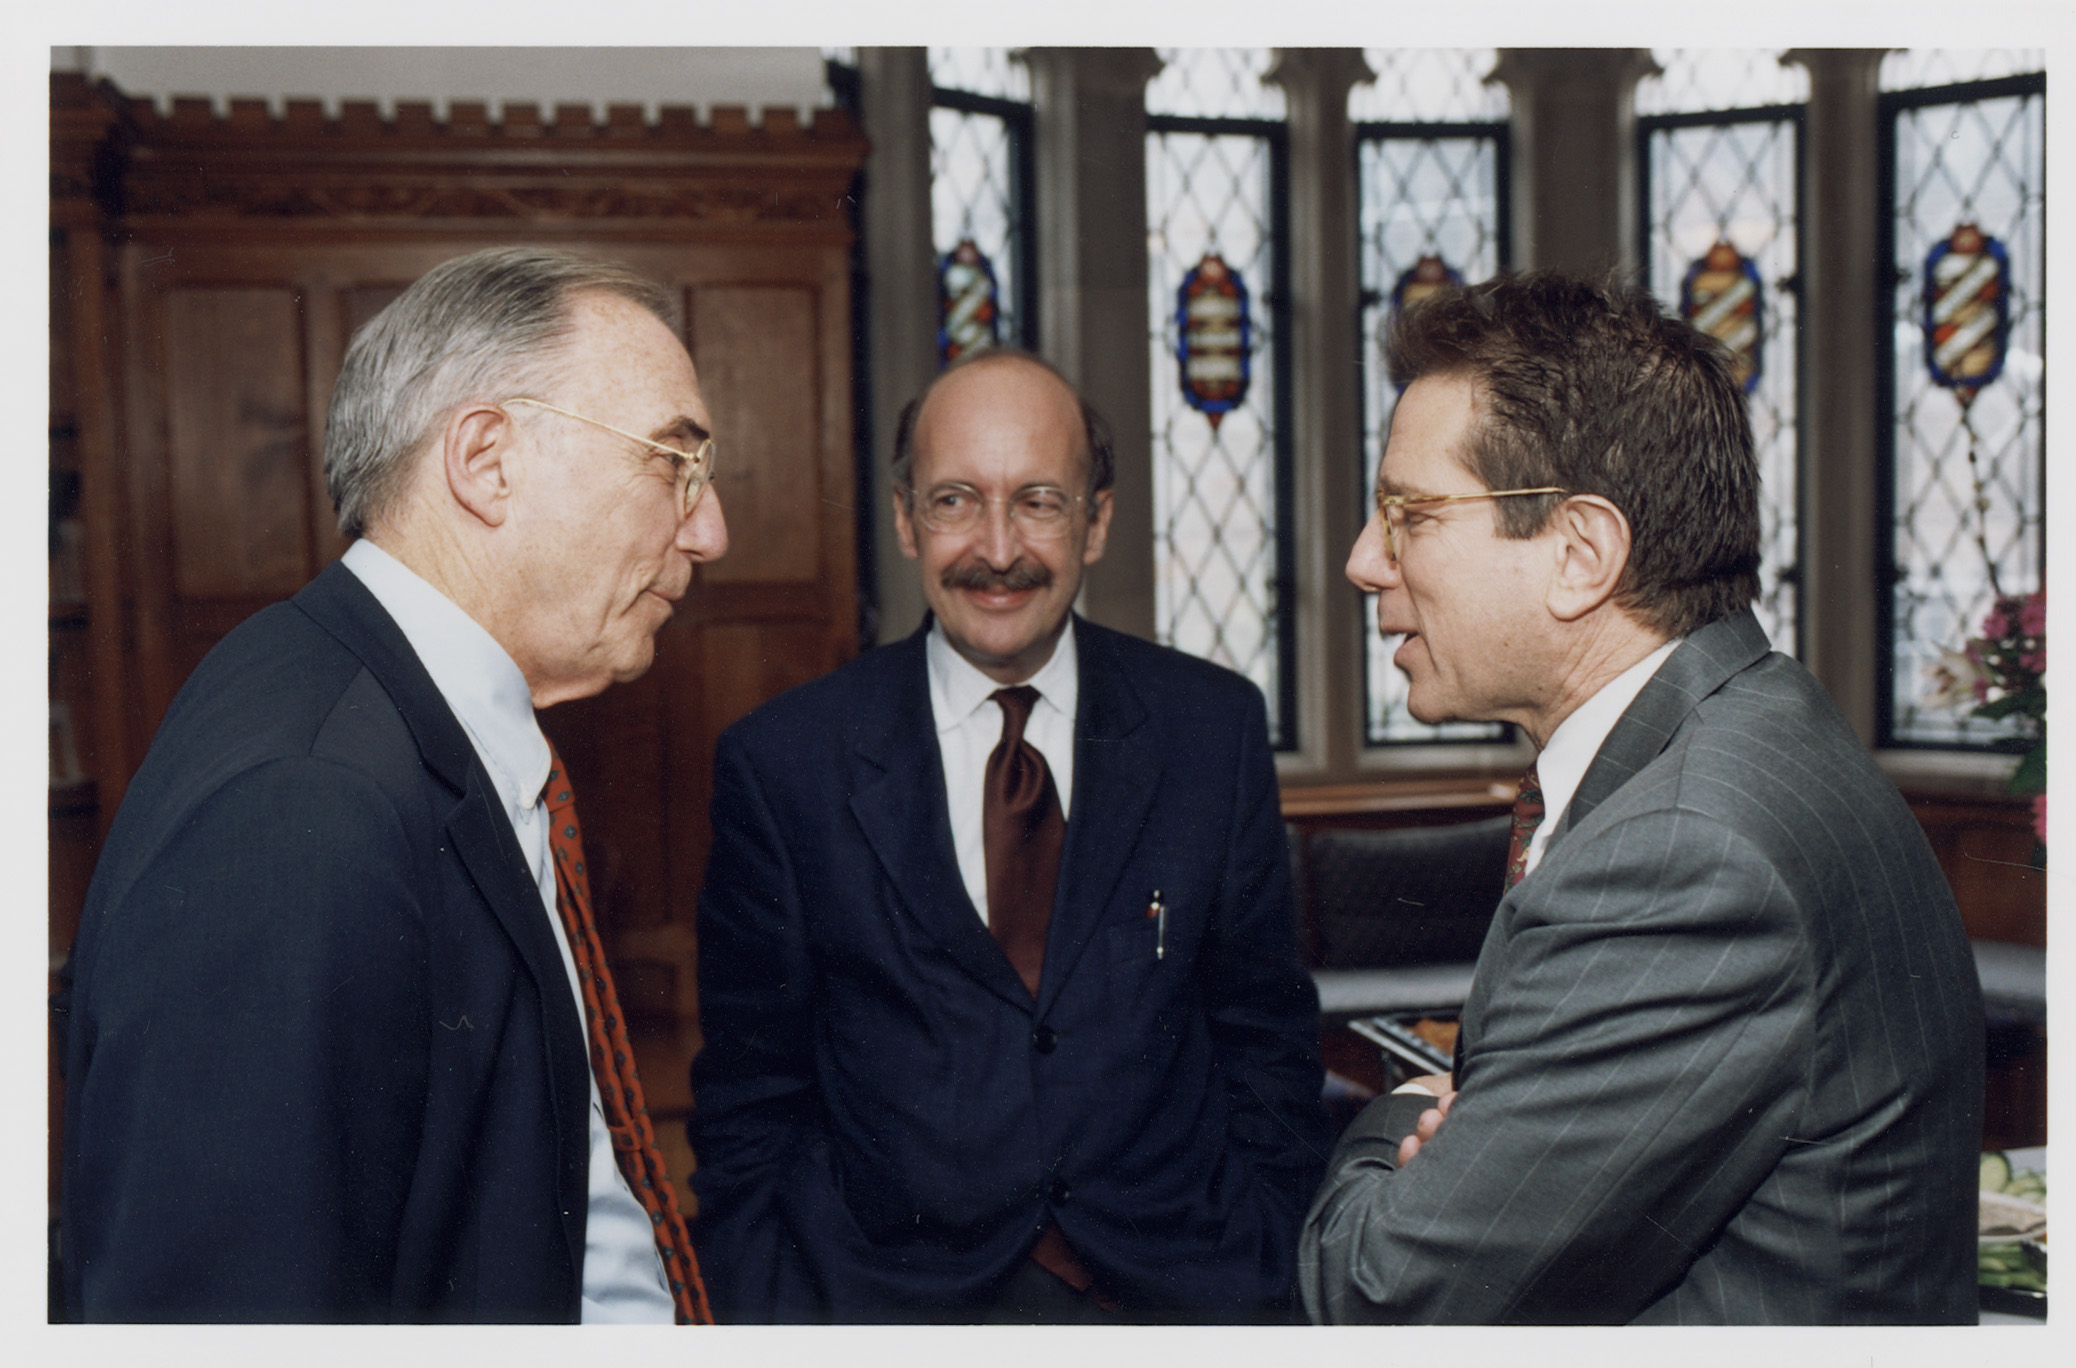 Robert Todd Lang '47, NYU Law Prof. William T. Allen, and YLS Dean Anthony Kronman '75